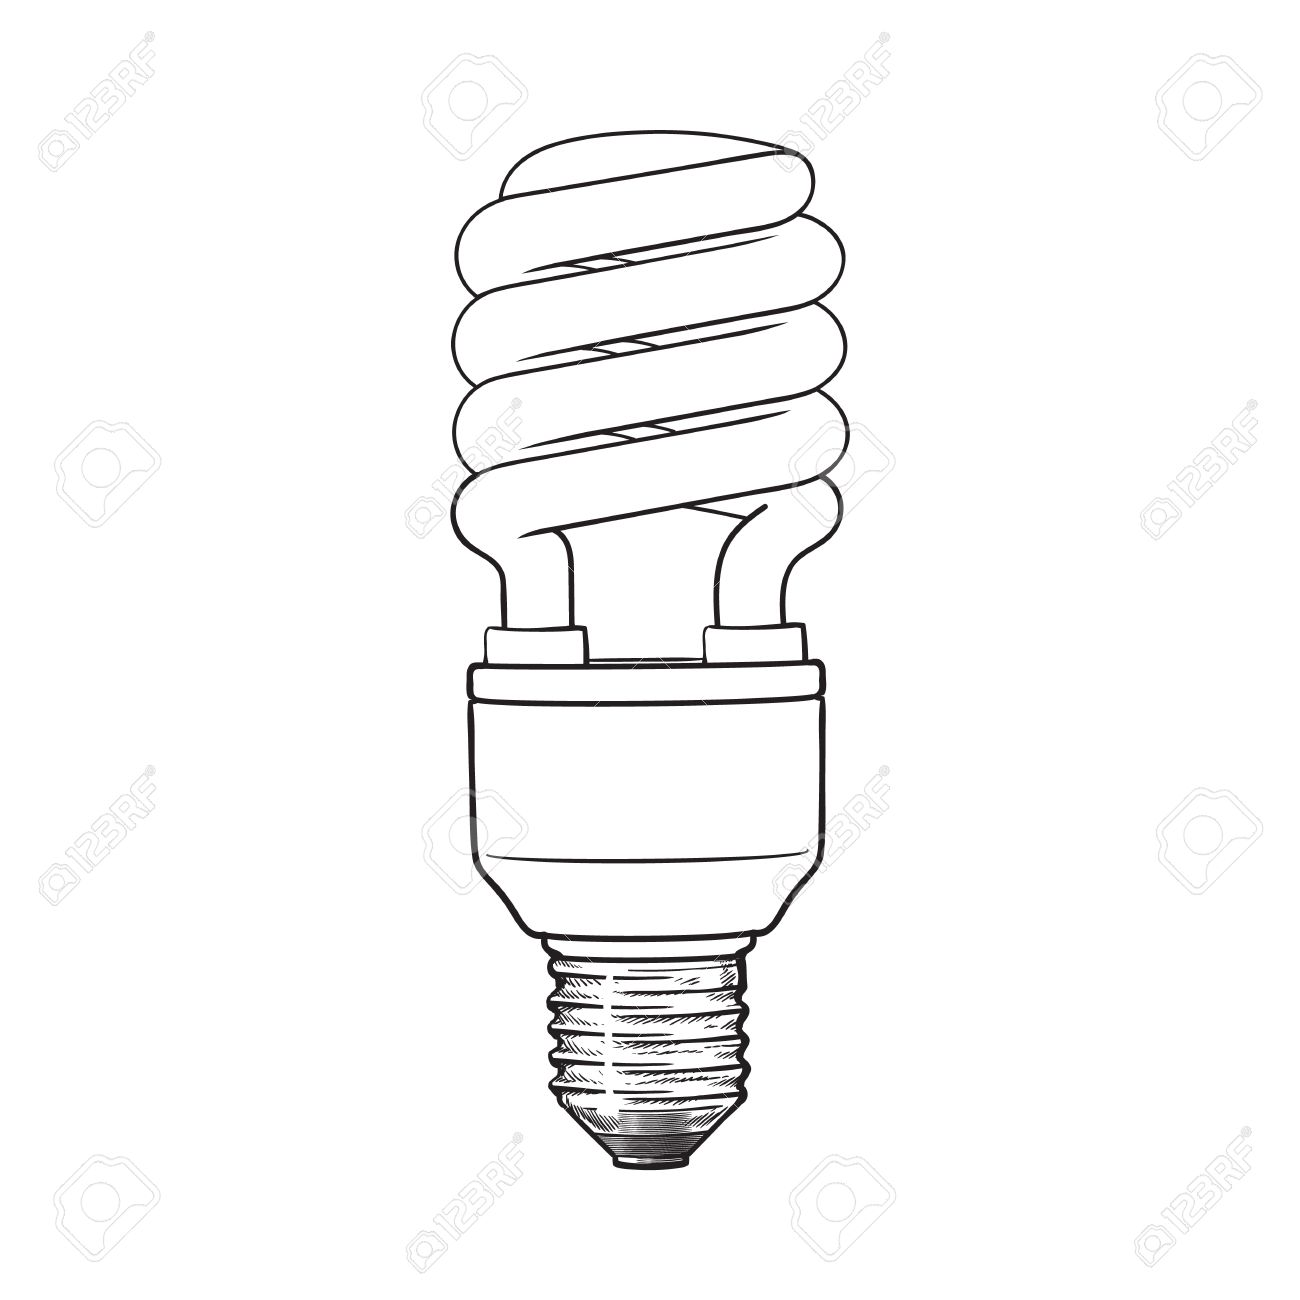 Fluorescent, Energy Saving, Spiral Light Bulb, Side View, Sketch ... for Fluorescent Tube Drawing  55dqh